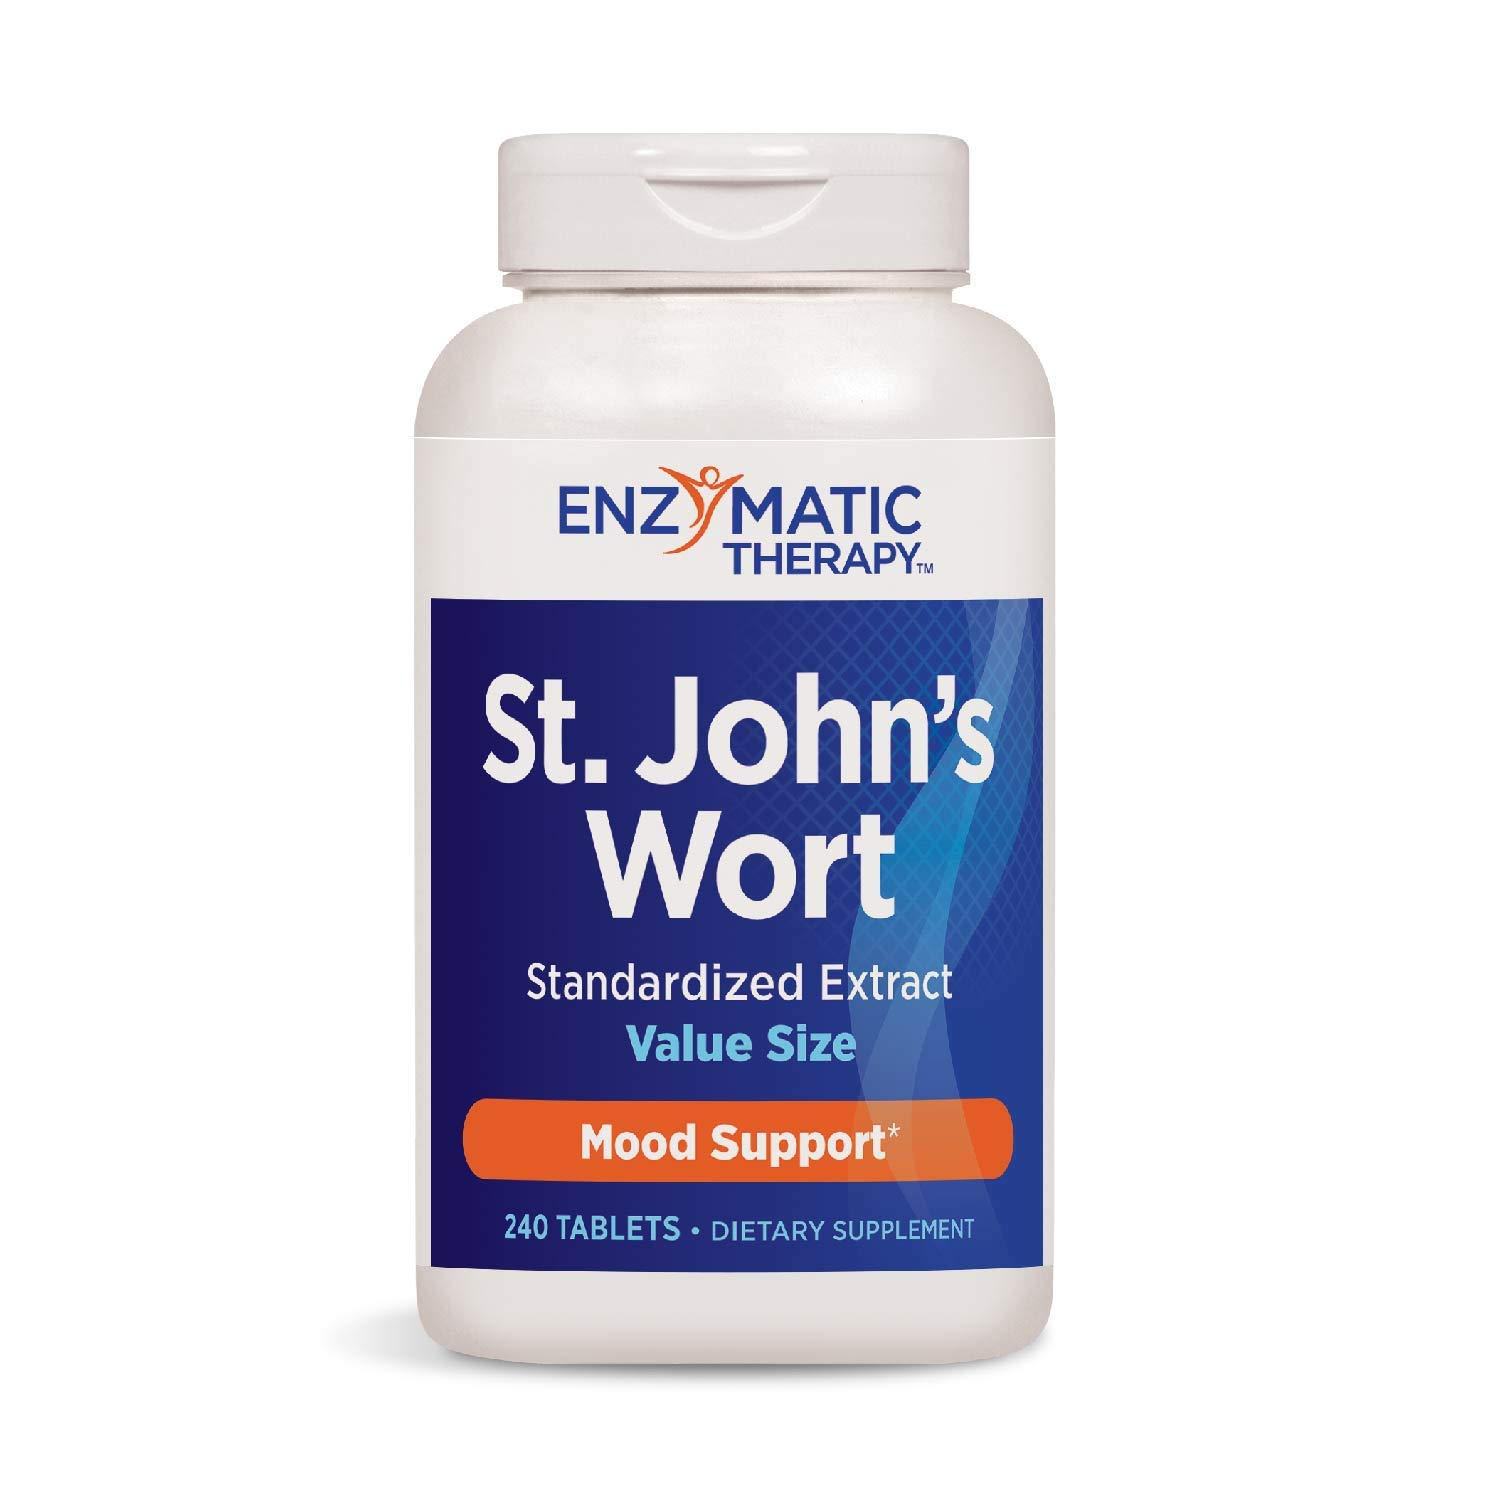 Enzymatic Therapy St. John's Wort Standardized Extract Mood Support, 240 Count (Packaging May Vary)